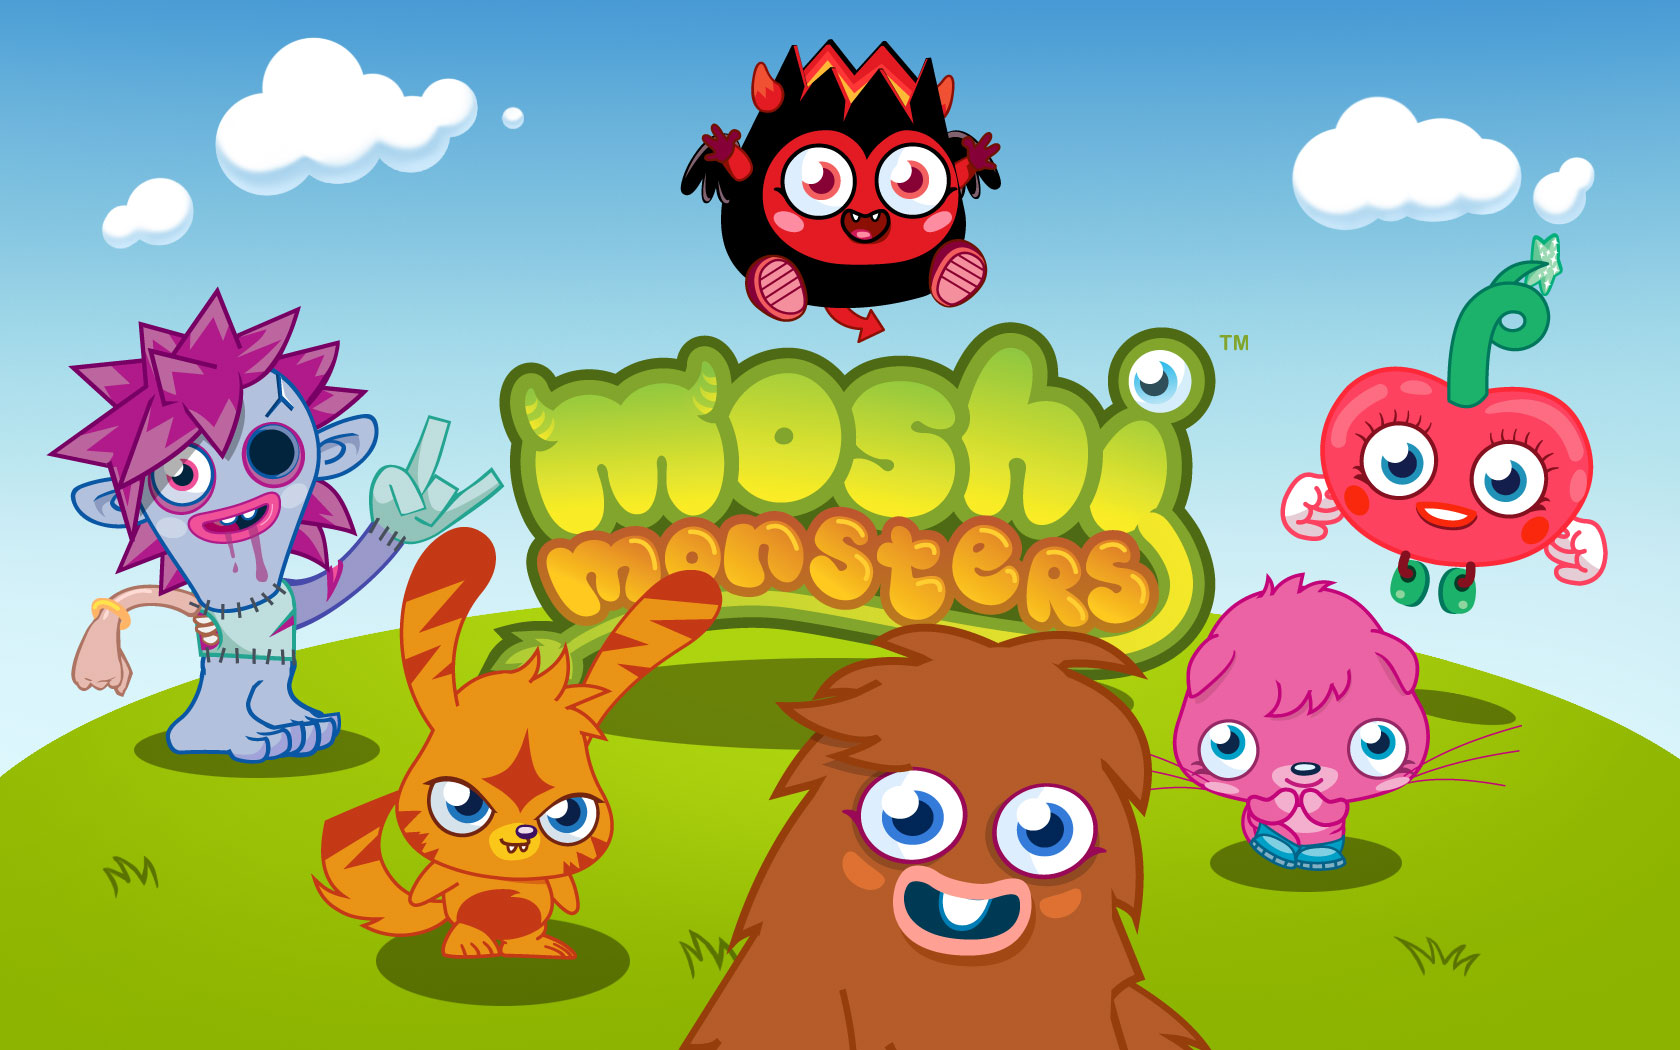 Moshi Monsters The Daily Growl - print-and-play Moshi monster print out pictures